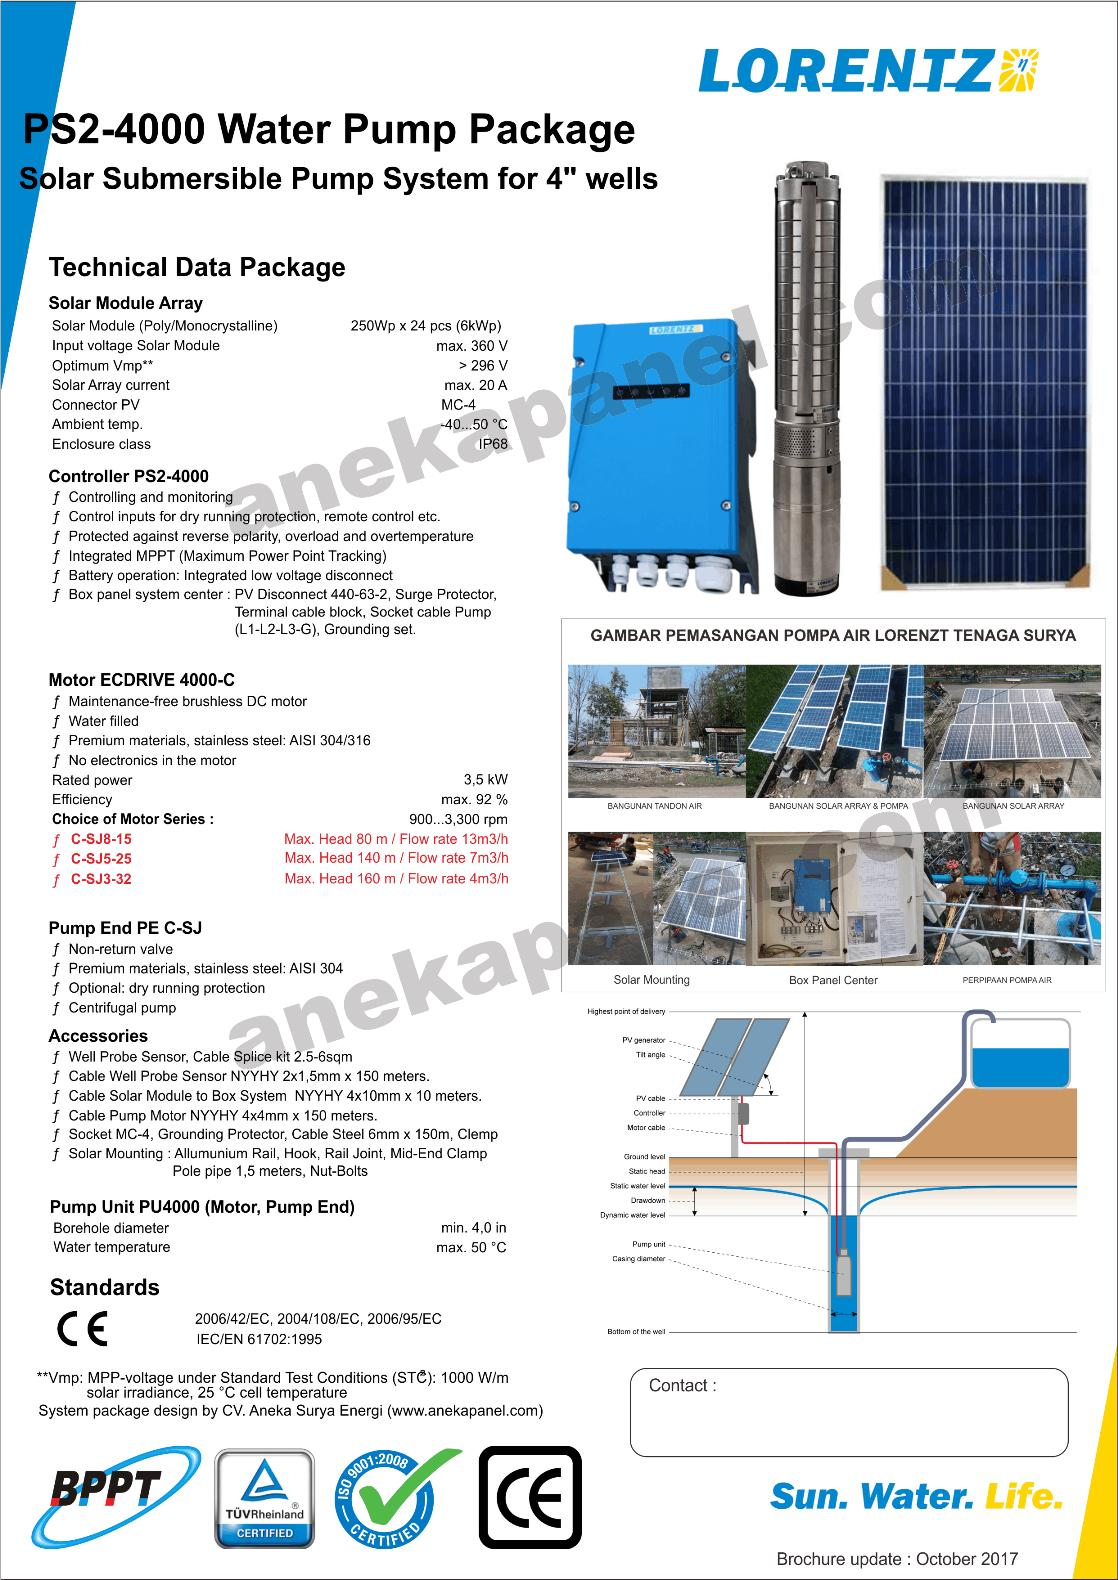 paket-pompa-air-tenaga-surya-lorentz-ps2-4000-user-.jpg